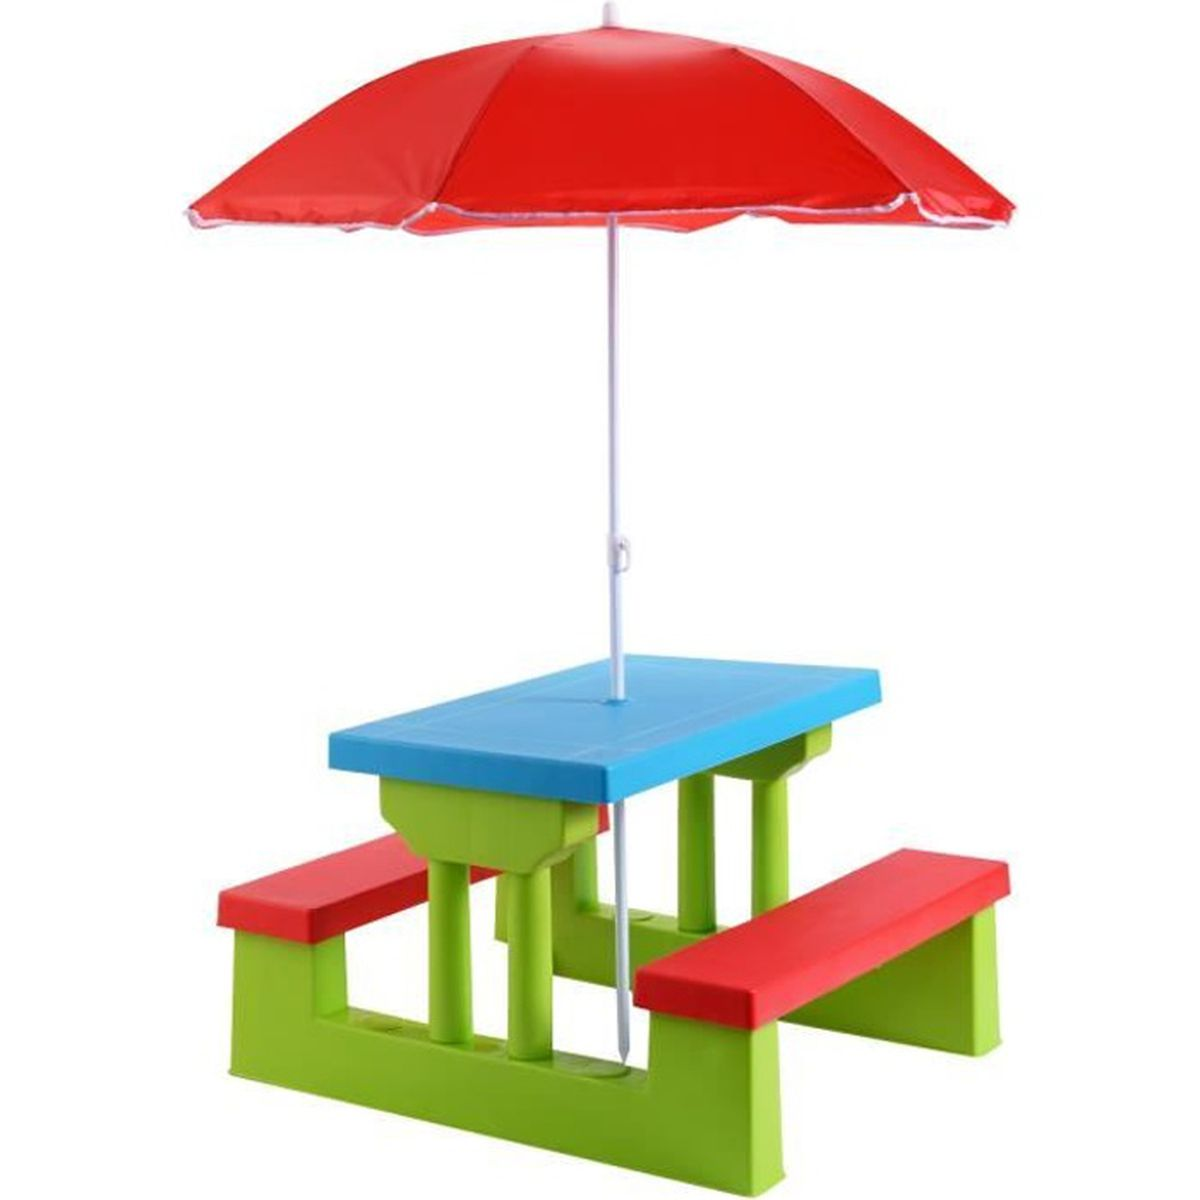 ensemble de jardin pour enfant table bancs avec parasol. Black Bedroom Furniture Sets. Home Design Ideas